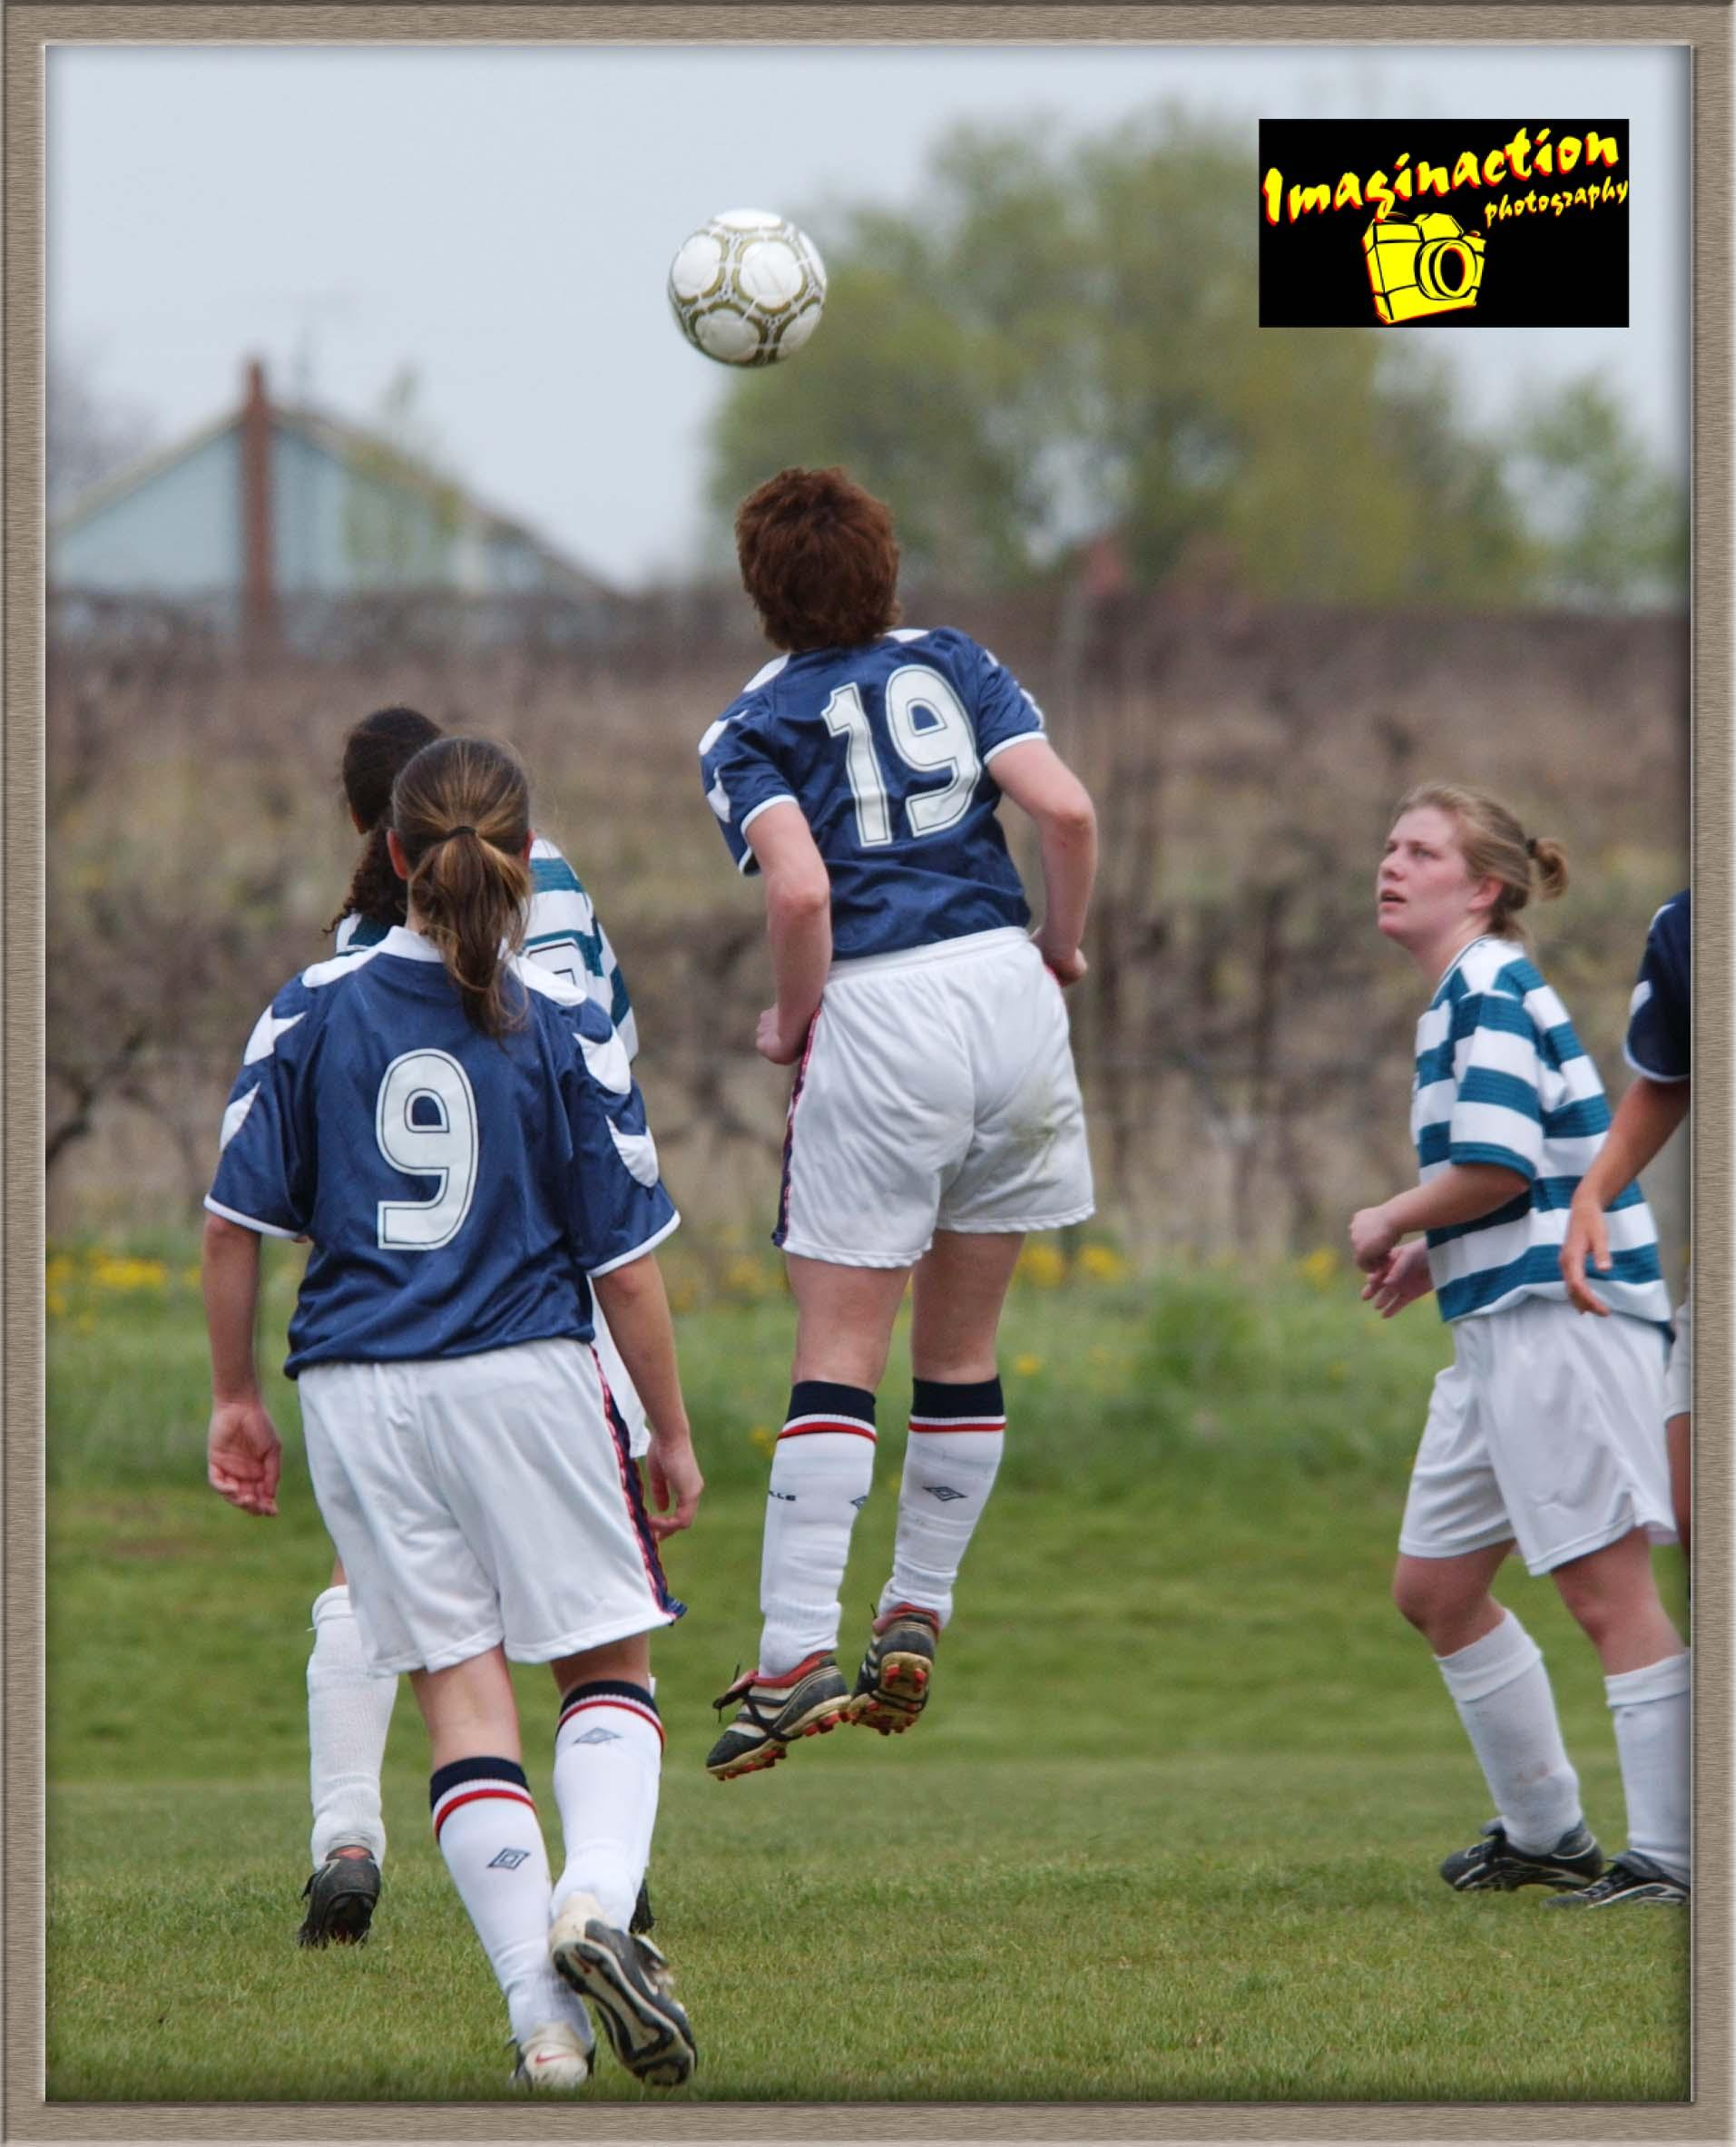 U16 Girls Action 2003